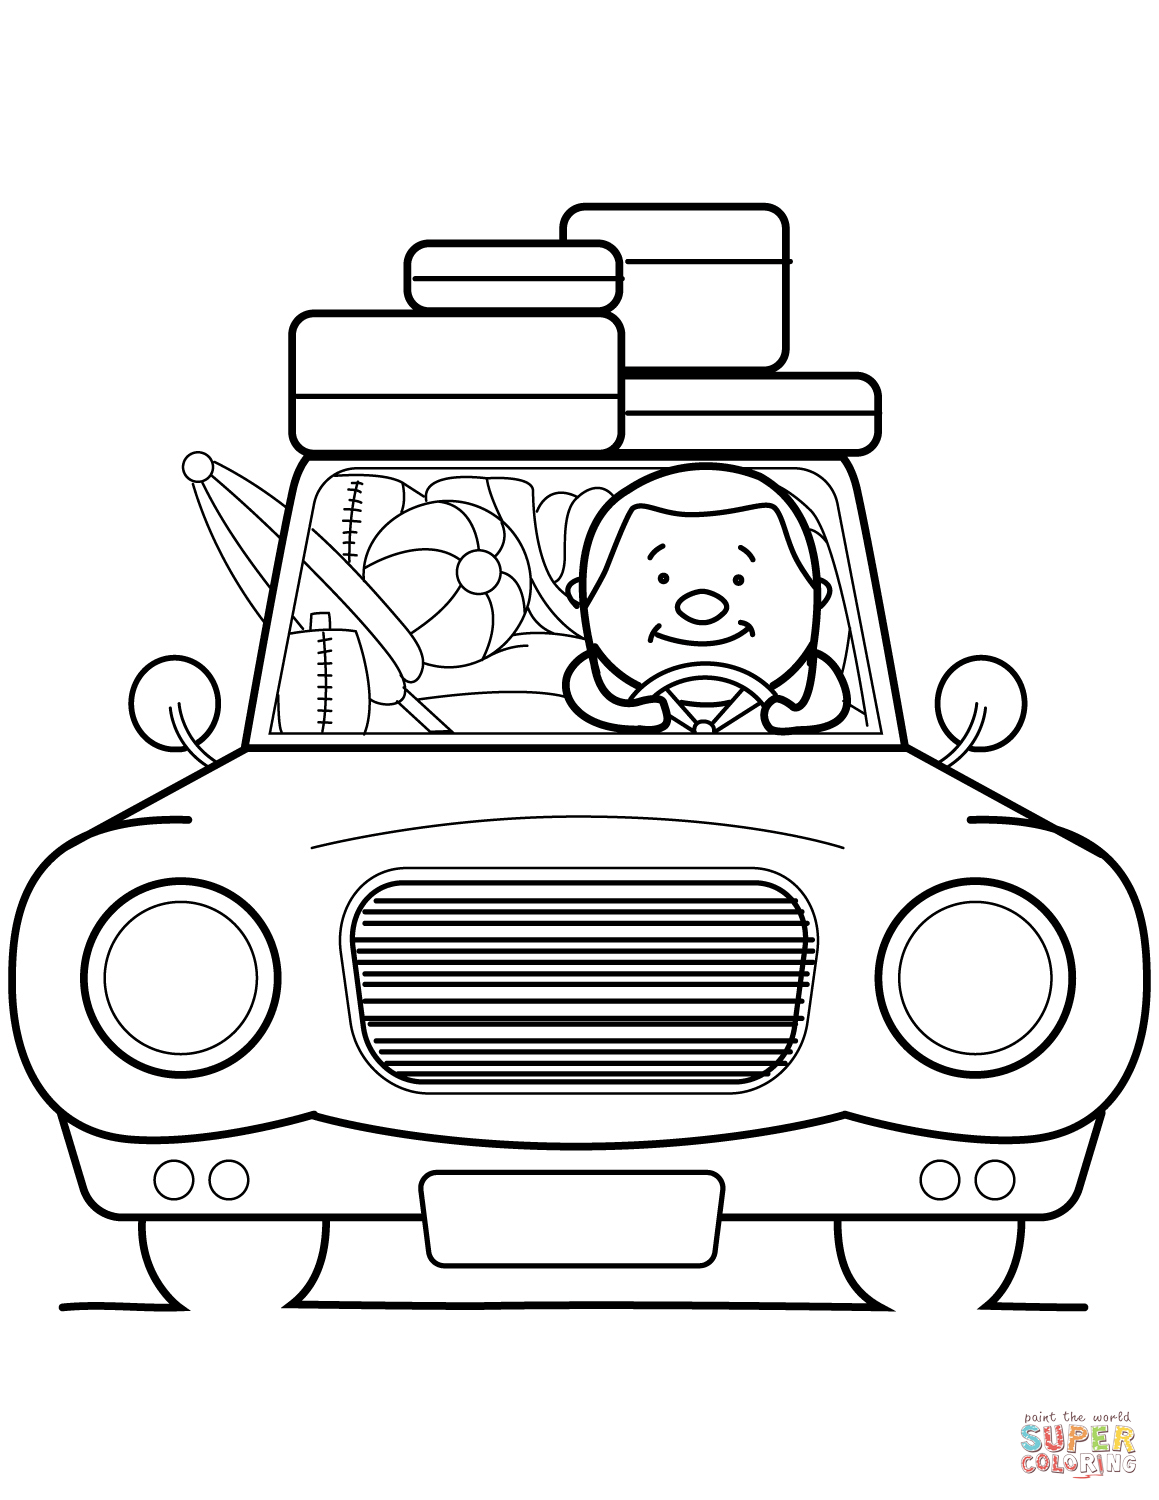 Go Summer Vacation Coloring Page